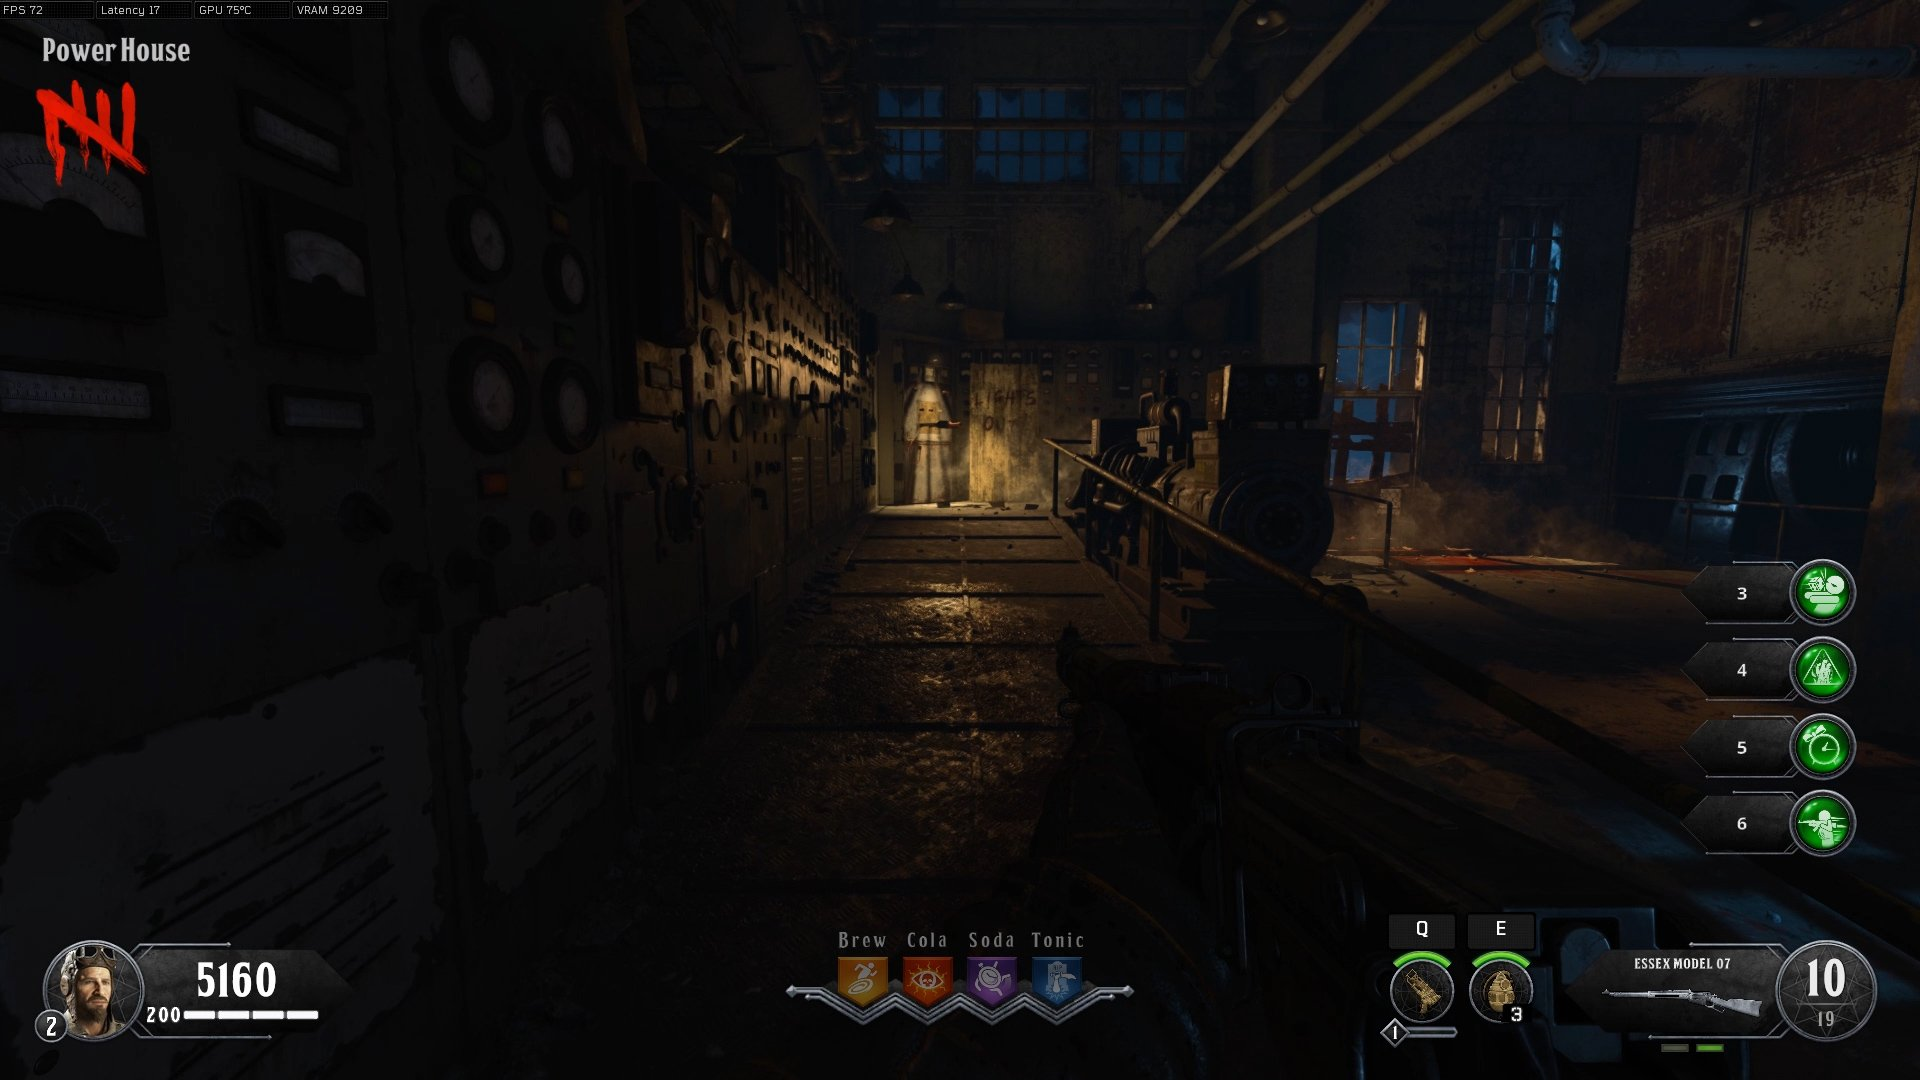 How to turn on the power in Blood of the Dead - Call of Duty